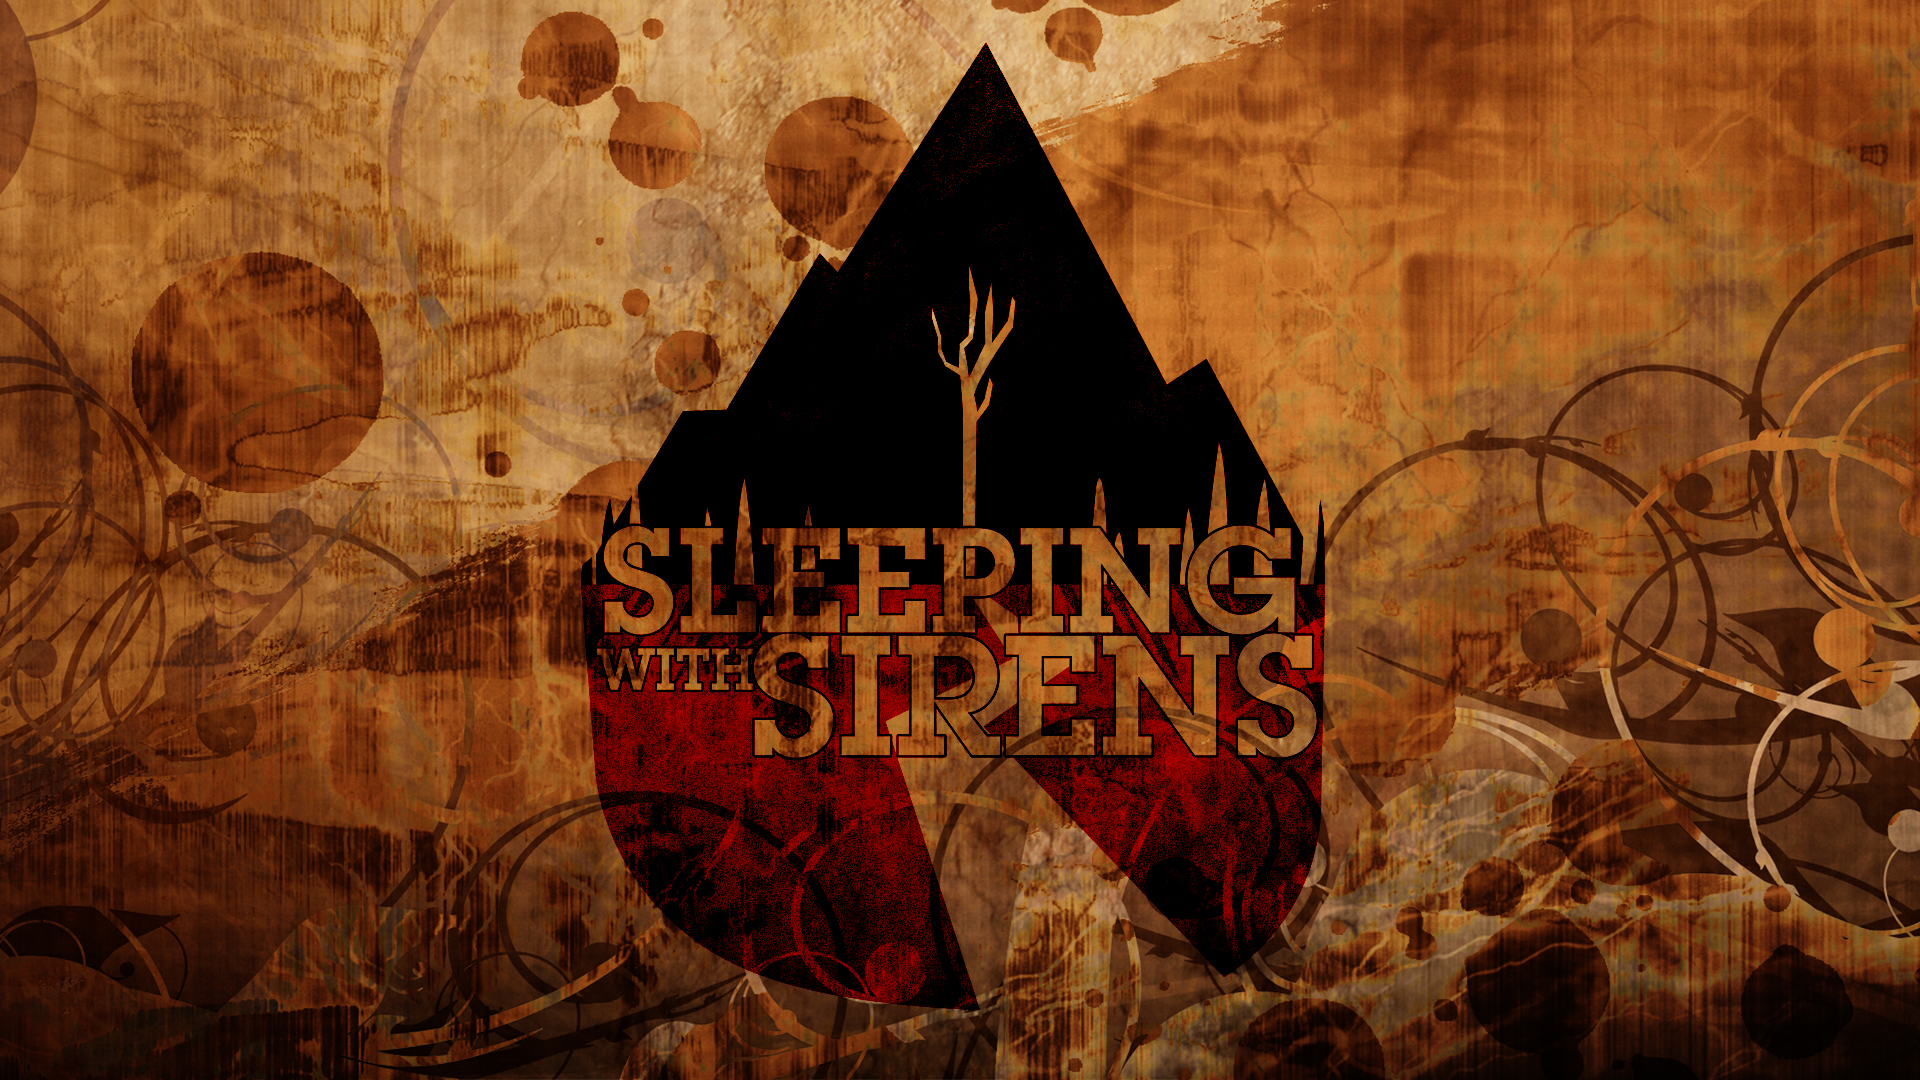 Wallpaper Hd Taylor Swift 1 Sleeping With Sirens Hd Wallpapers Backgrounds